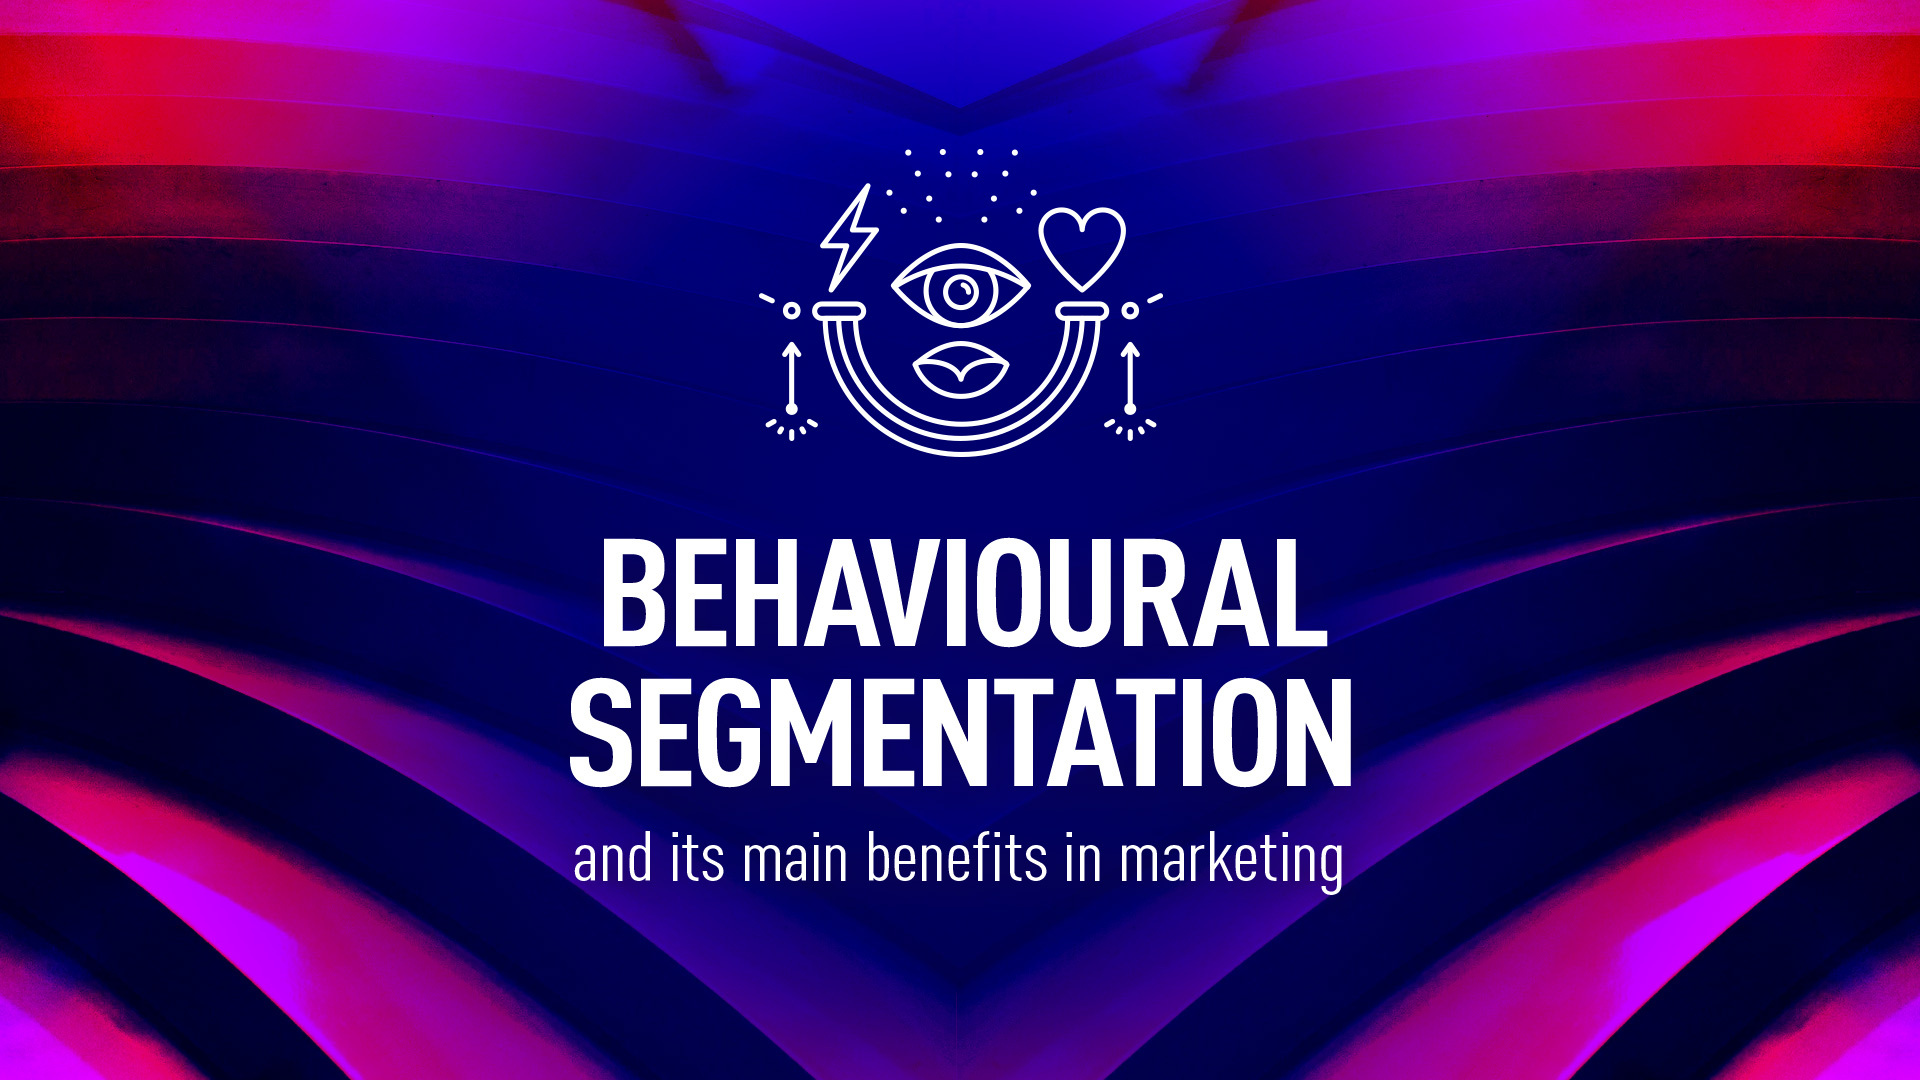 Main benefits of behavioural segmentation in marketing